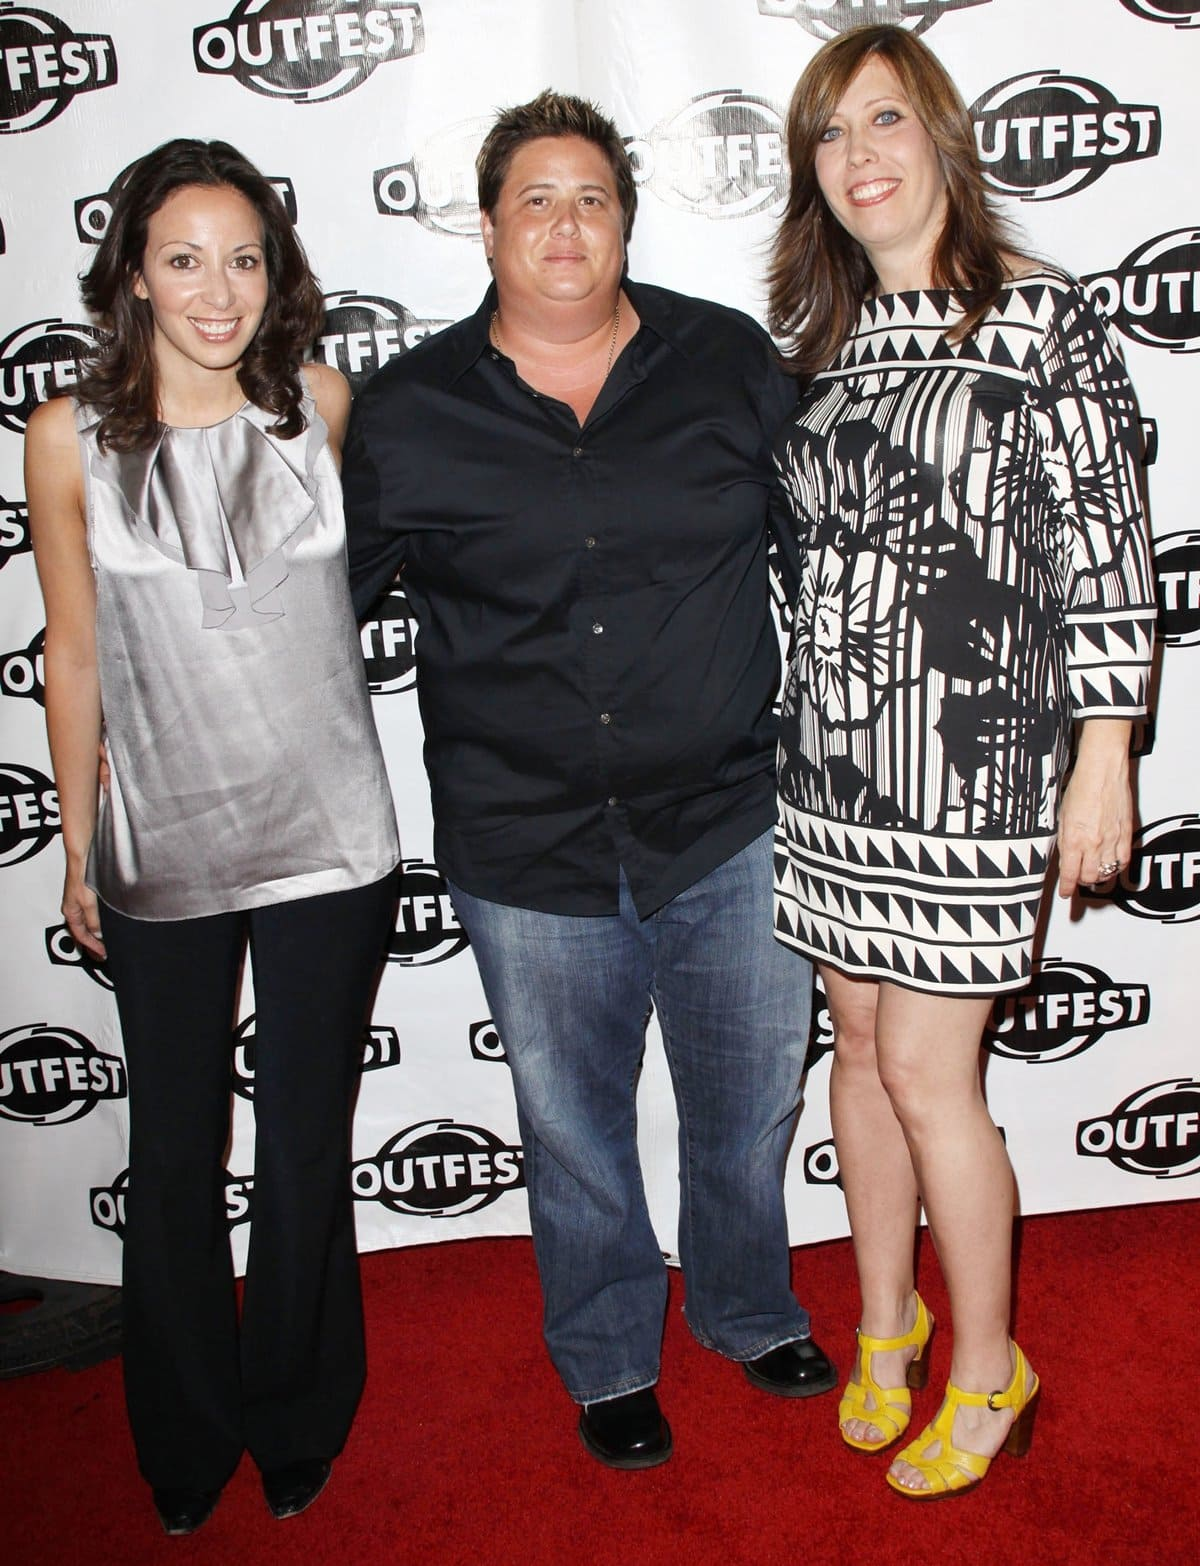 Chaz Bono with his then-girlfriend Jennifer Elia and Outfest Executive Director Kirsten Schaffer